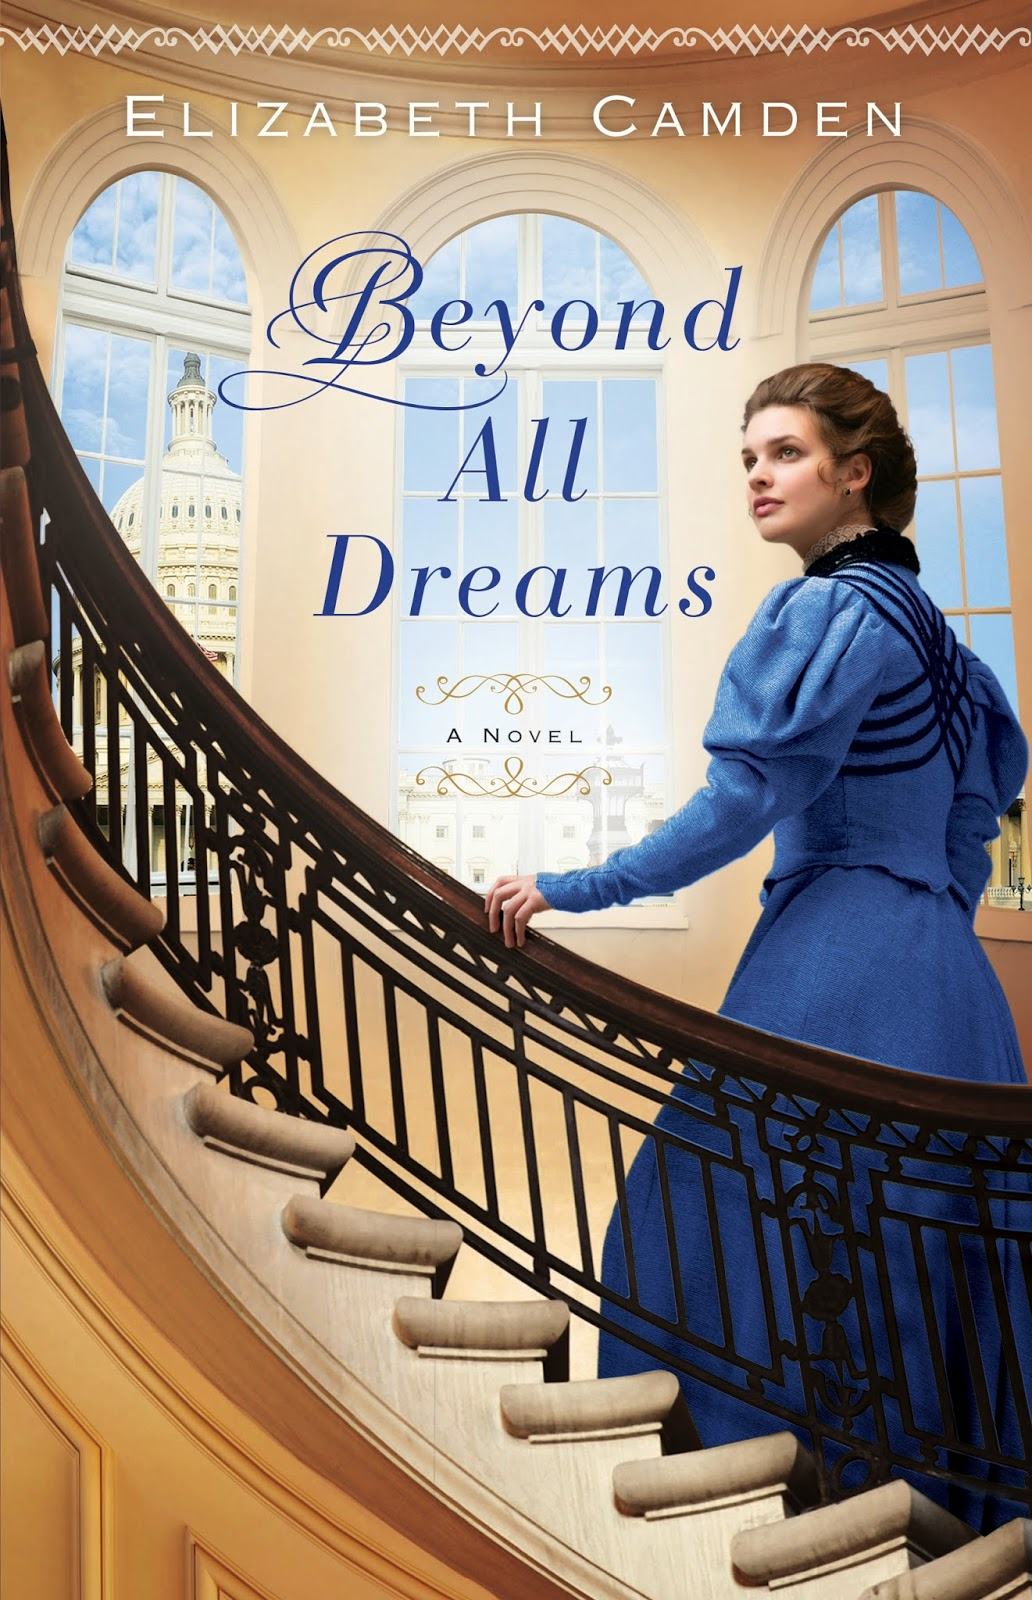 book review of Beyond All Dreams by Elizabeth Camden (Bethany House) by papertapepins